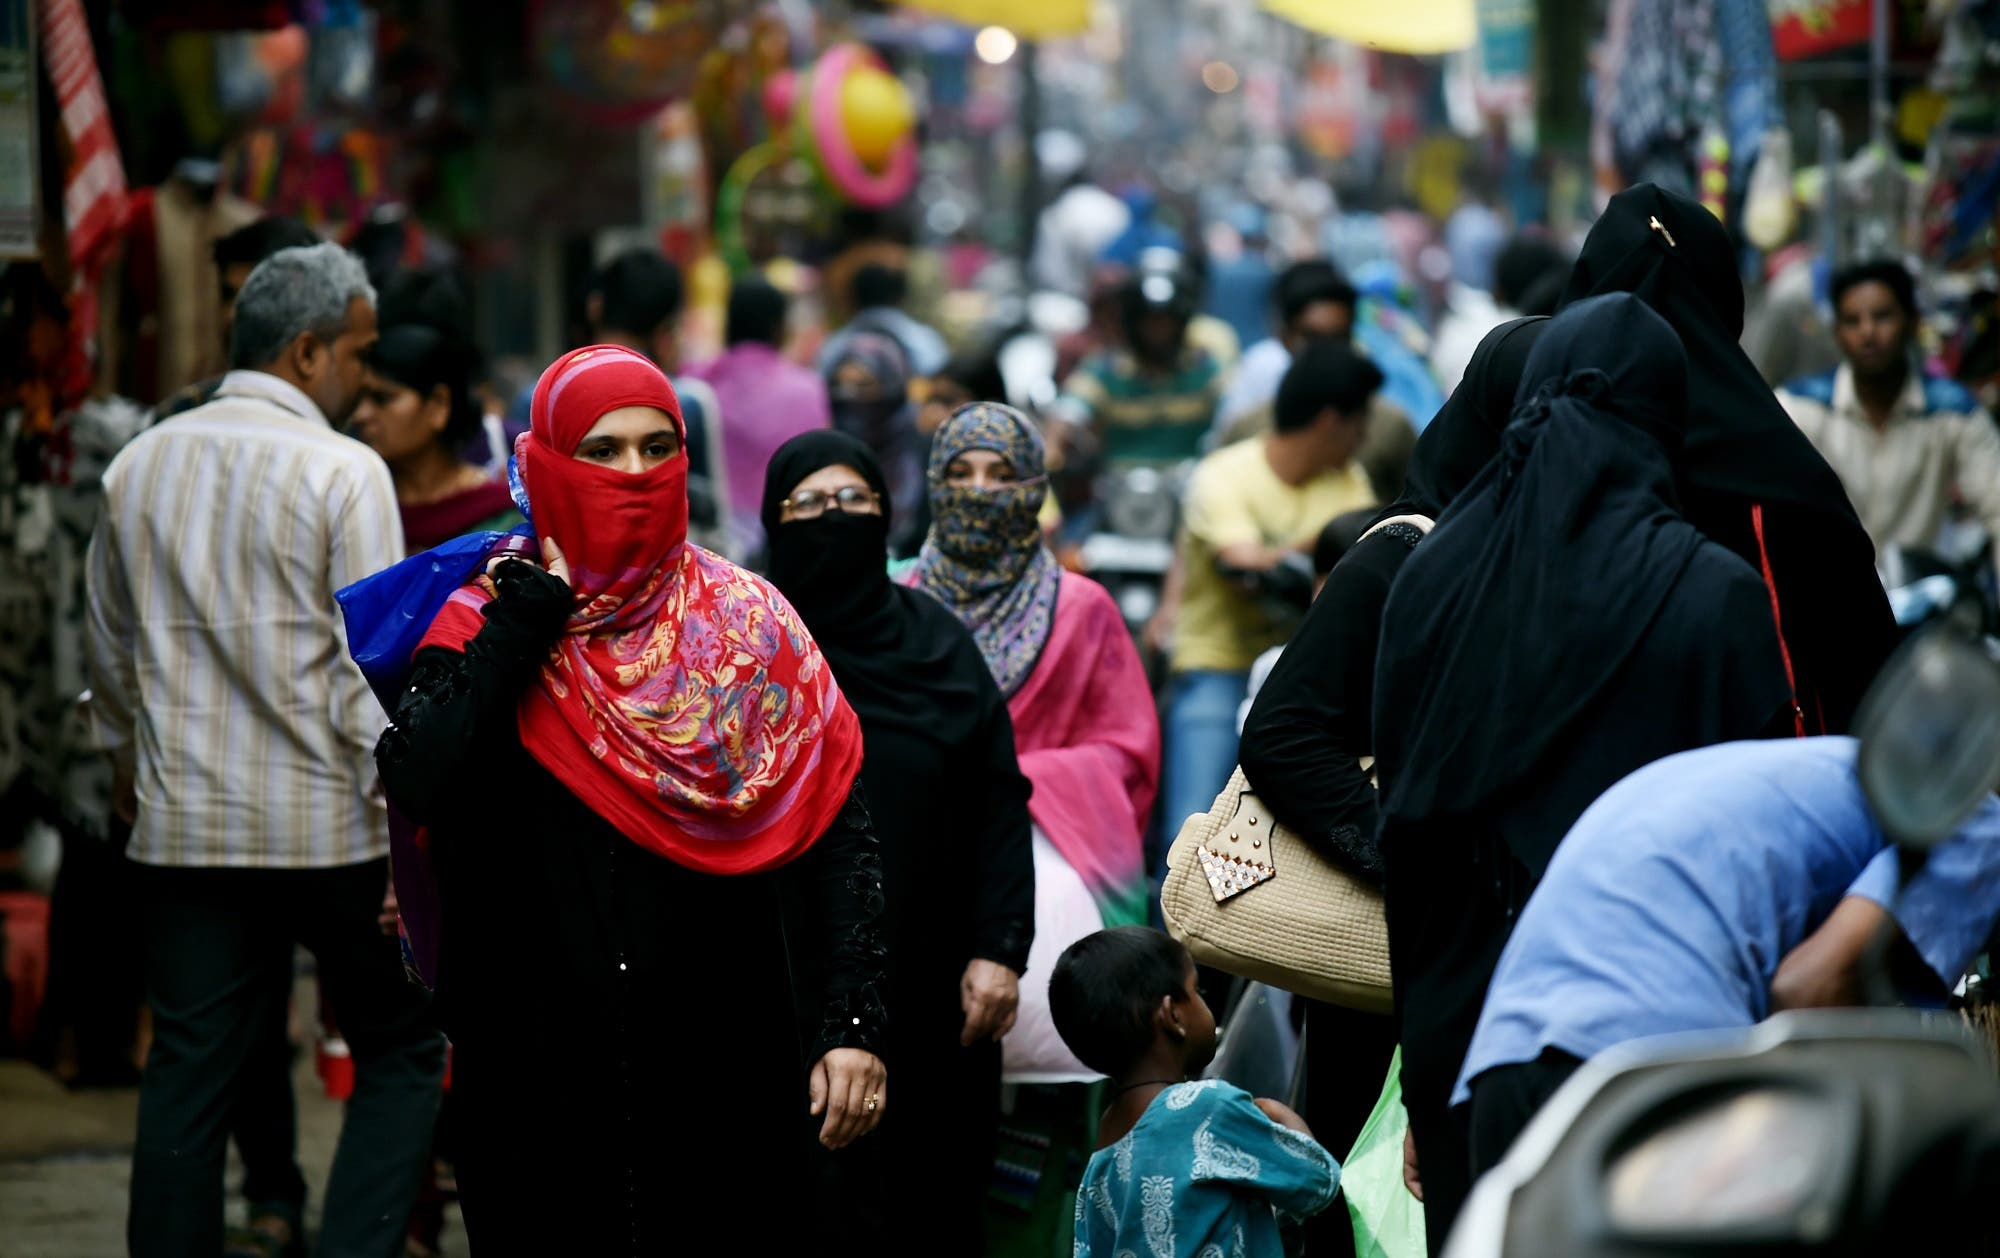 In this photograph taken on April 28, 2016, Muslim shoppers walk through a market in Bhopal. (AFP)